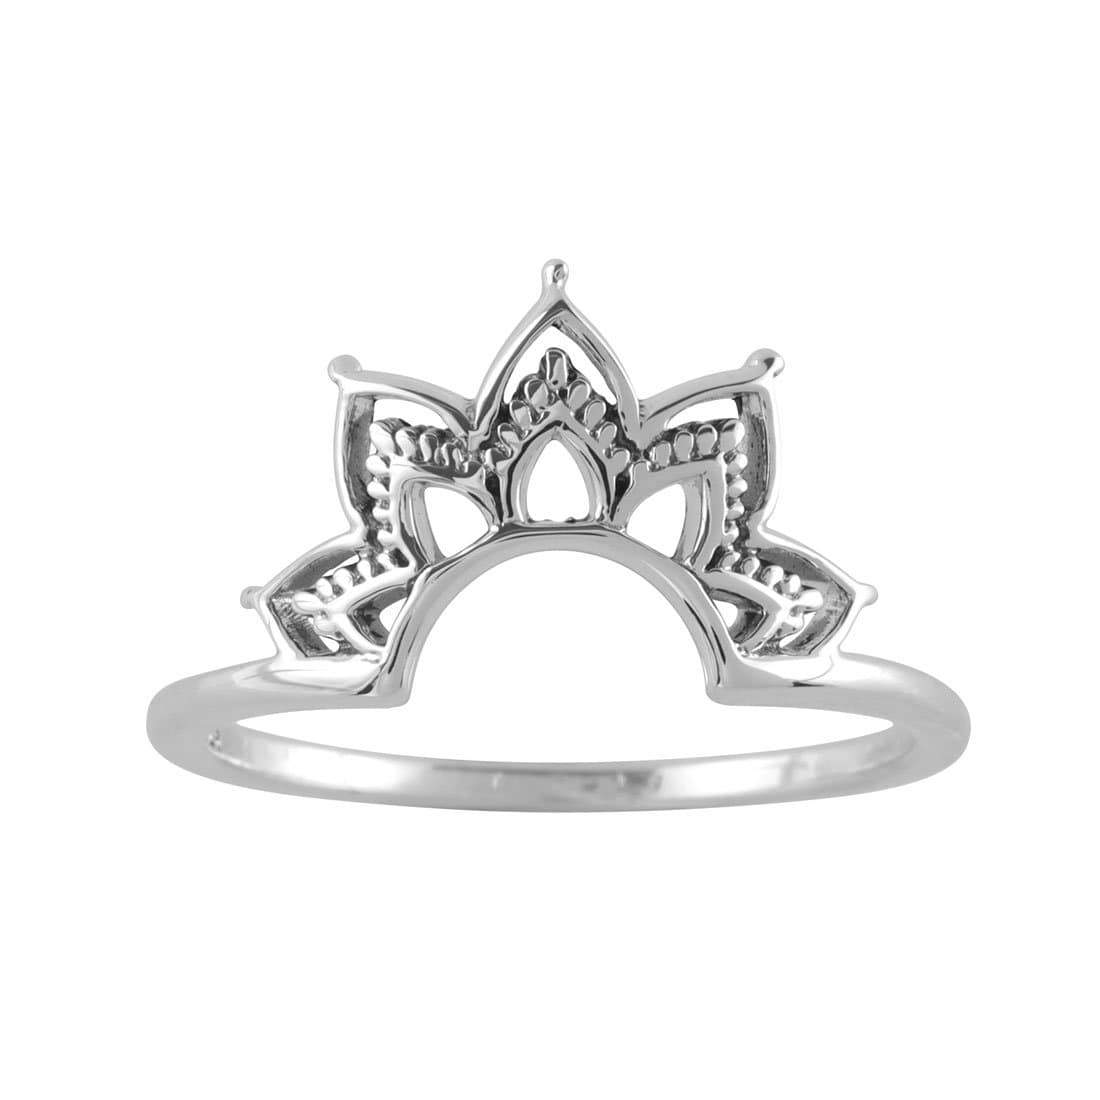 Midsummer Star Ring Autumn Star Ring